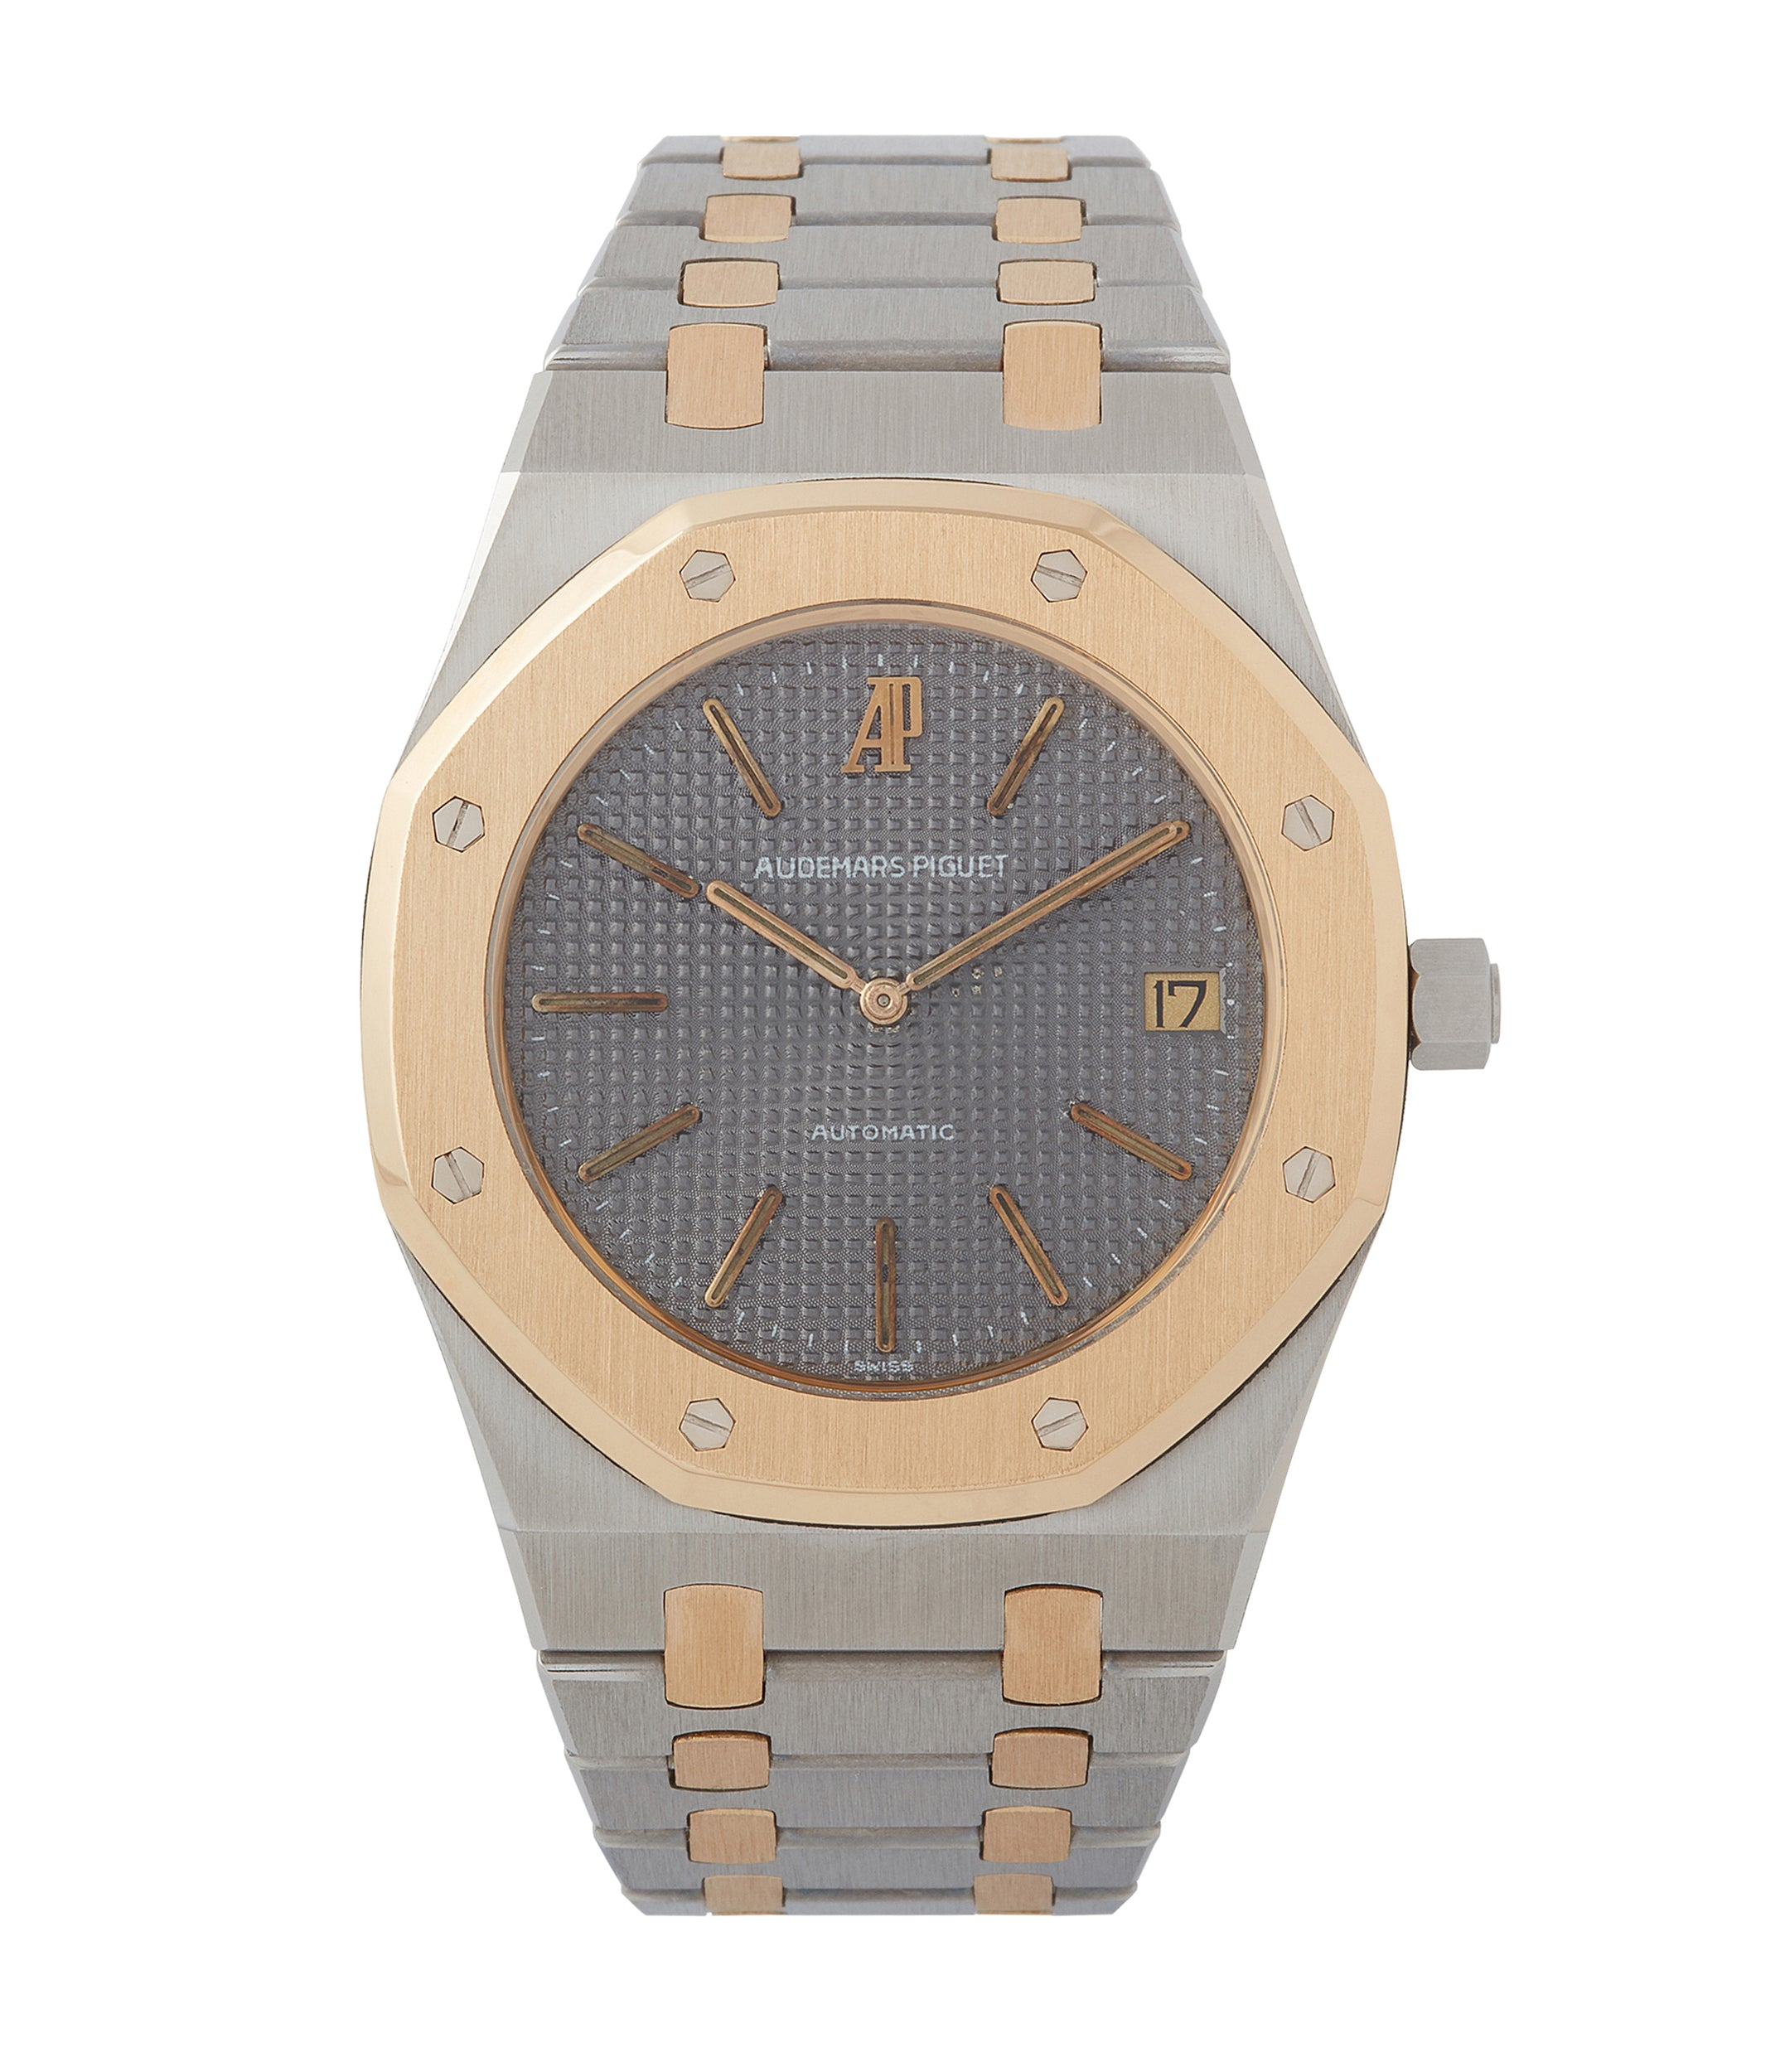 buy vintage Audemars Piguet Royal Oak 5402SA steel gold bi-metal sports watch for sale online at A Collected Man London UK specialist of rare watches